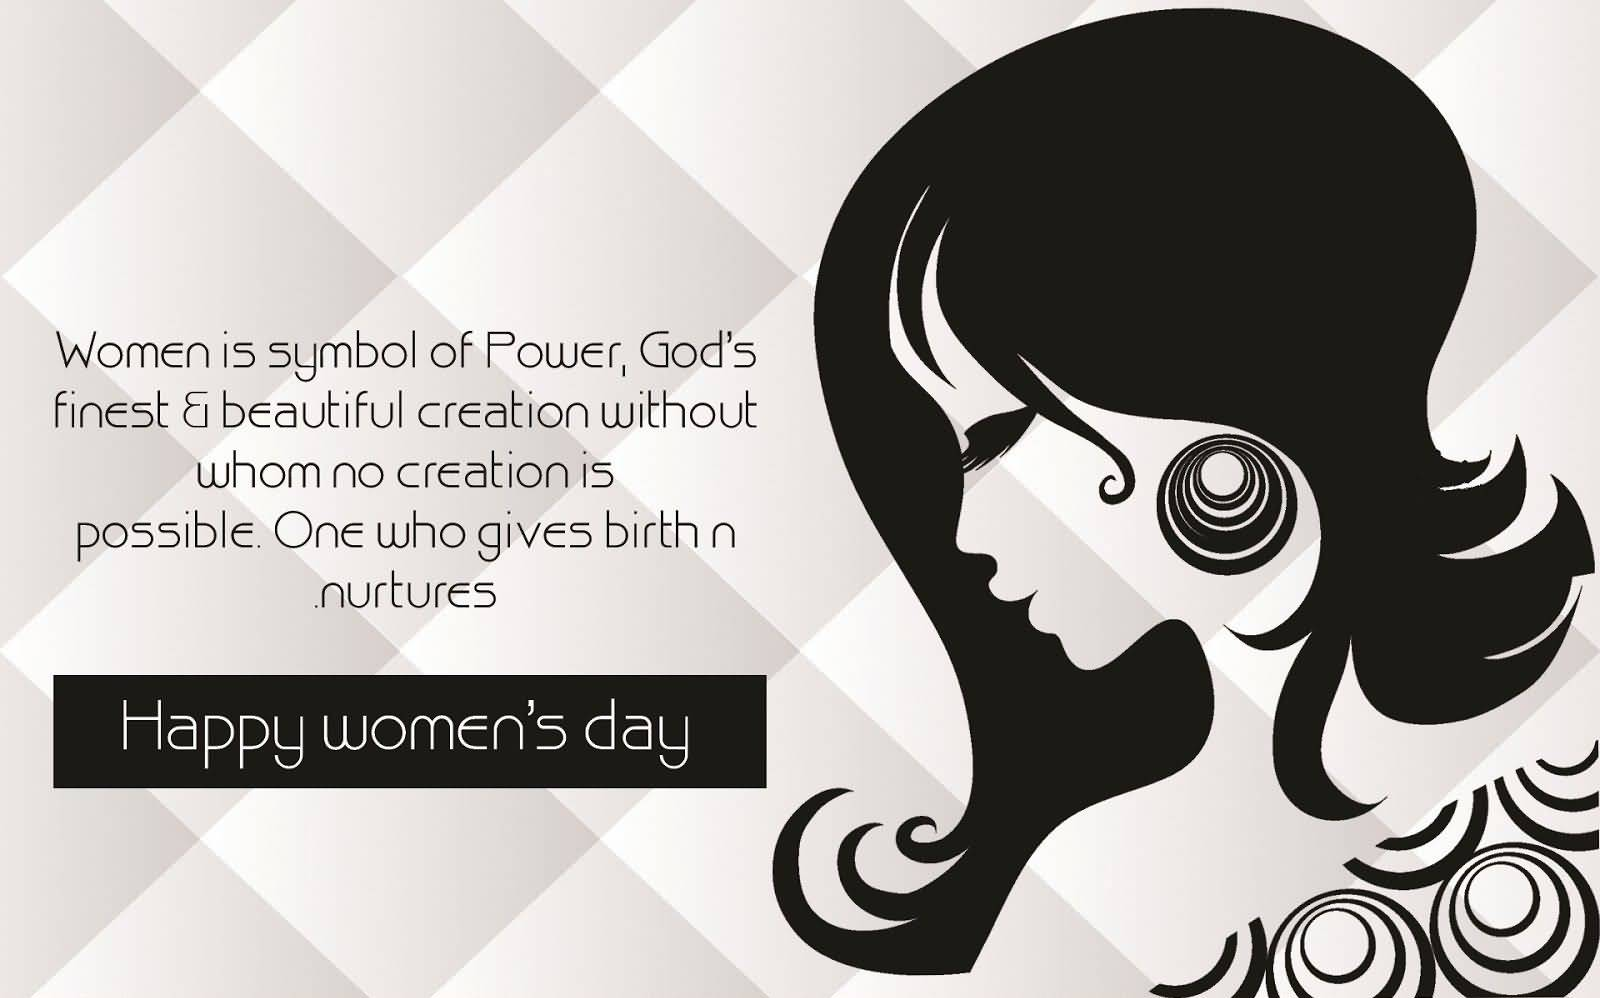 50 most beautiful womens day wish pictures and photos women is symbol of power gods finest beautiful creation without whom no creation is biocorpaavc